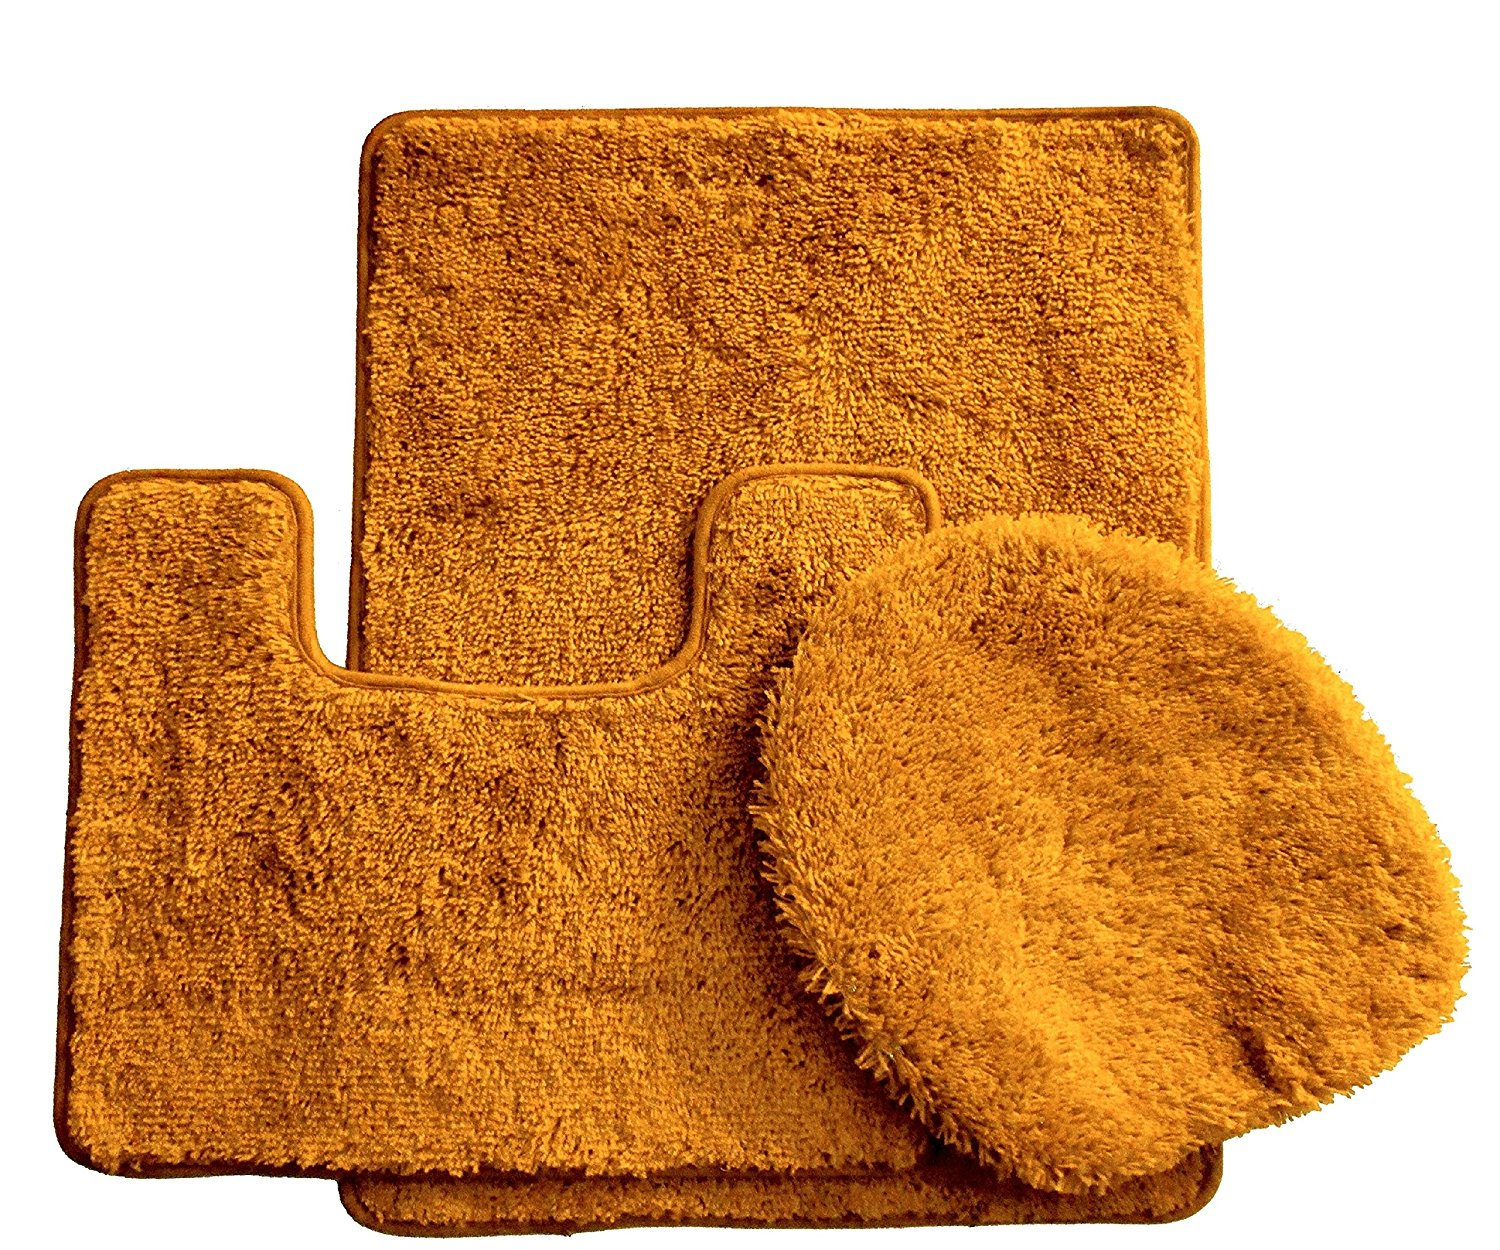 Luxury bath mats australia alemite 14.4 volt battery